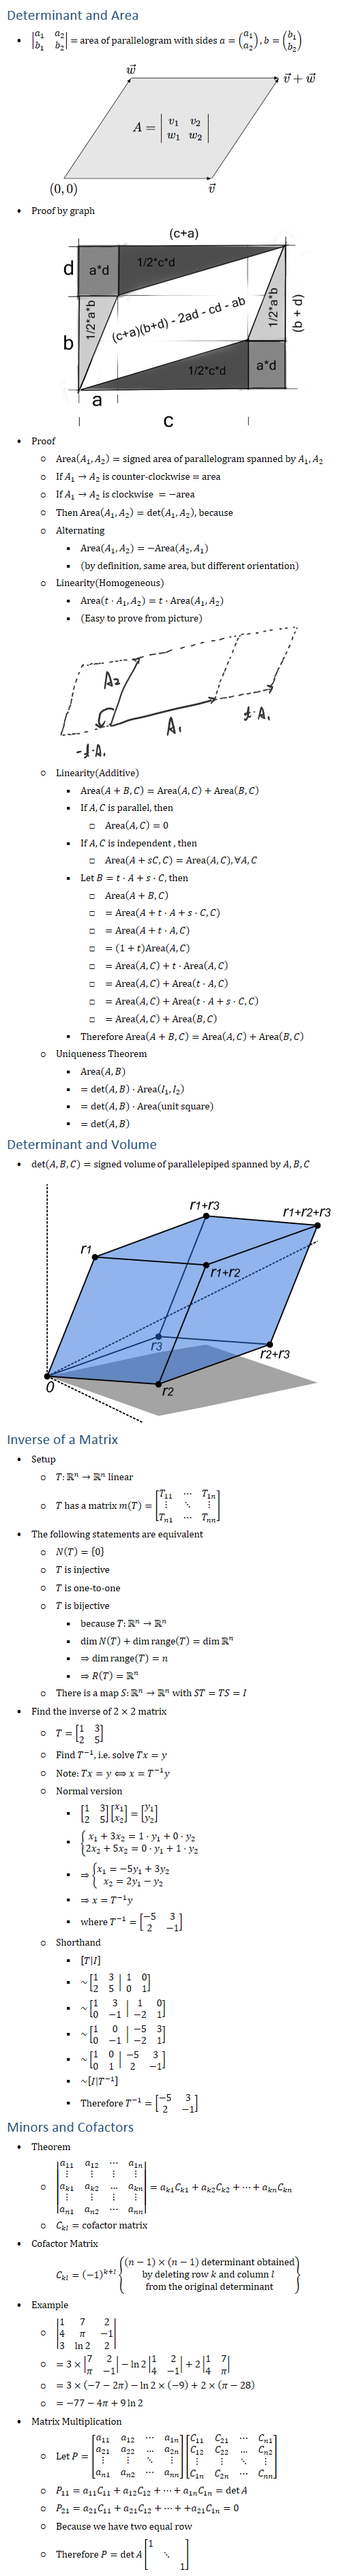 Determinant and Area • |■8(a_1&a_2@b_1&b_2 )| = area of parallelogram with sides a=(█(a_1@a_2 )), b=(█(b_1@b_2 )) • Proof by graph • Proof ○ Area(A_1,A_2 )=signed area of parallelogram spanned by A_1, A_2 ○ If A_1→A_2 is counter-clockwise = area ○ If A_1→A_2 is clockwise =−area ○ Then Area(A_1,A_2 )=det(A_1,A_2 ), because ○ Alternating § Area(A_1,A_2 )=−Area(A_2,A_1 ) § (by definition, same area, but different orientation) ○ Linearity(Homogeneous) § Area(t⋅A_1,A_2 )=t⋅Area(A_1,A_2 ) § (Easy to prove from picture) ○ Linearity(Additive) § Area(A+B,C)=Area(A,C)+Area(B,C) § If A,C is parallel, then □ Area(A,C)=0 § If A,C is independent , then □ Area(A+sC,C)=Area(A,C), ∀A,C § Let B=t⋅A+s⋅C, then □ Area(A+B,C) □ =Area(A+t⋅A+s⋅C,C) □ =Area(A+t⋅A,C) □ =(1+t)Area(A,C) □ =Area(A,C)+t⋅Area(A,C) □ =Area(A,C)+Area(t⋅A,C) □ =Area(A,C)+Area(t⋅A+s⋅C,C) □ =Area(A,C)+Area(B,C) § Therefore Area(A+B,C)=Area(A,C)+Area(B,C) ○ Uniqueness Theorem § Area(A,B) § =det〖(A,B)⋅Area(I_1,I_2 )〗 § =det〖(A,B)⋅Area(unit square)〗 § =det(A,B) Determinant and Volume • det〖(A,B,C)=signed volume〗 of parallelepiped spanned by A,B,C Inverse of a Matrix • Setup ○ T:Rn→Rn linear ○ T has a matrix m(T)=[■8(T_11&⋯&T_1n@⋮&⋱&⋮@T_n1&⋯&T_nn )] • The following statements are equivalent ○ N(T)={0} ○ T is injective ○ T is one\-to\-one ○ T is bijective § because T:Rn→Rn § dimN(T)+dimrange(T)=dim〖Rn 〗 § ⇒dimrange(T)=n § ⇒R(T)=Rn ○ There is a map S:Rn→Rn with ST=TS=I • Find the inverse of 2×2 matrix ○ T=[■8(1&3@2&5)] ○ Find T^(−1), i.e. solve Tx=y ○ Note: Tx=y⟺x=T^(−1) y ○ Normal version § [■8(1&3@2&5)][█(x_1@x_2 )]=[█(y_1@y_2 )] § {█(x_1+3x_2=1⋅y_1+0⋅y_2@2x_2+5x_2=0⋅y_1+1⋅y_2 )┤ § ⇒{█(x_1=−5y_1+3y_2@x_2=2y_1−y_2 )┤ § ⇒x=T^(−1) y § where T^(−1)=[■8(−5&3@2&−1)] ○ Shorthand § [T│I] § ~[■8(1&3@2&5) │ ■8(1&0@0&1)] § ~[■8(1&3@0&−1) │ ■8(1&0@−2&1)] § ~[■8(1&0@0&−1) │ ■8(−5&3@−2&1)] § ~[■8(1&0@0&1) │ ■8(−5&3@2&−1)] § ~[I│T^(−1) ] § Therefore T^(−1)=[■8(−5&3@2&−1)] Minors and Cofactors • Theorem ○ |■8(a_11&a_12&⋯&a_1n@⋮&⋮&⋮&⋮@a_k